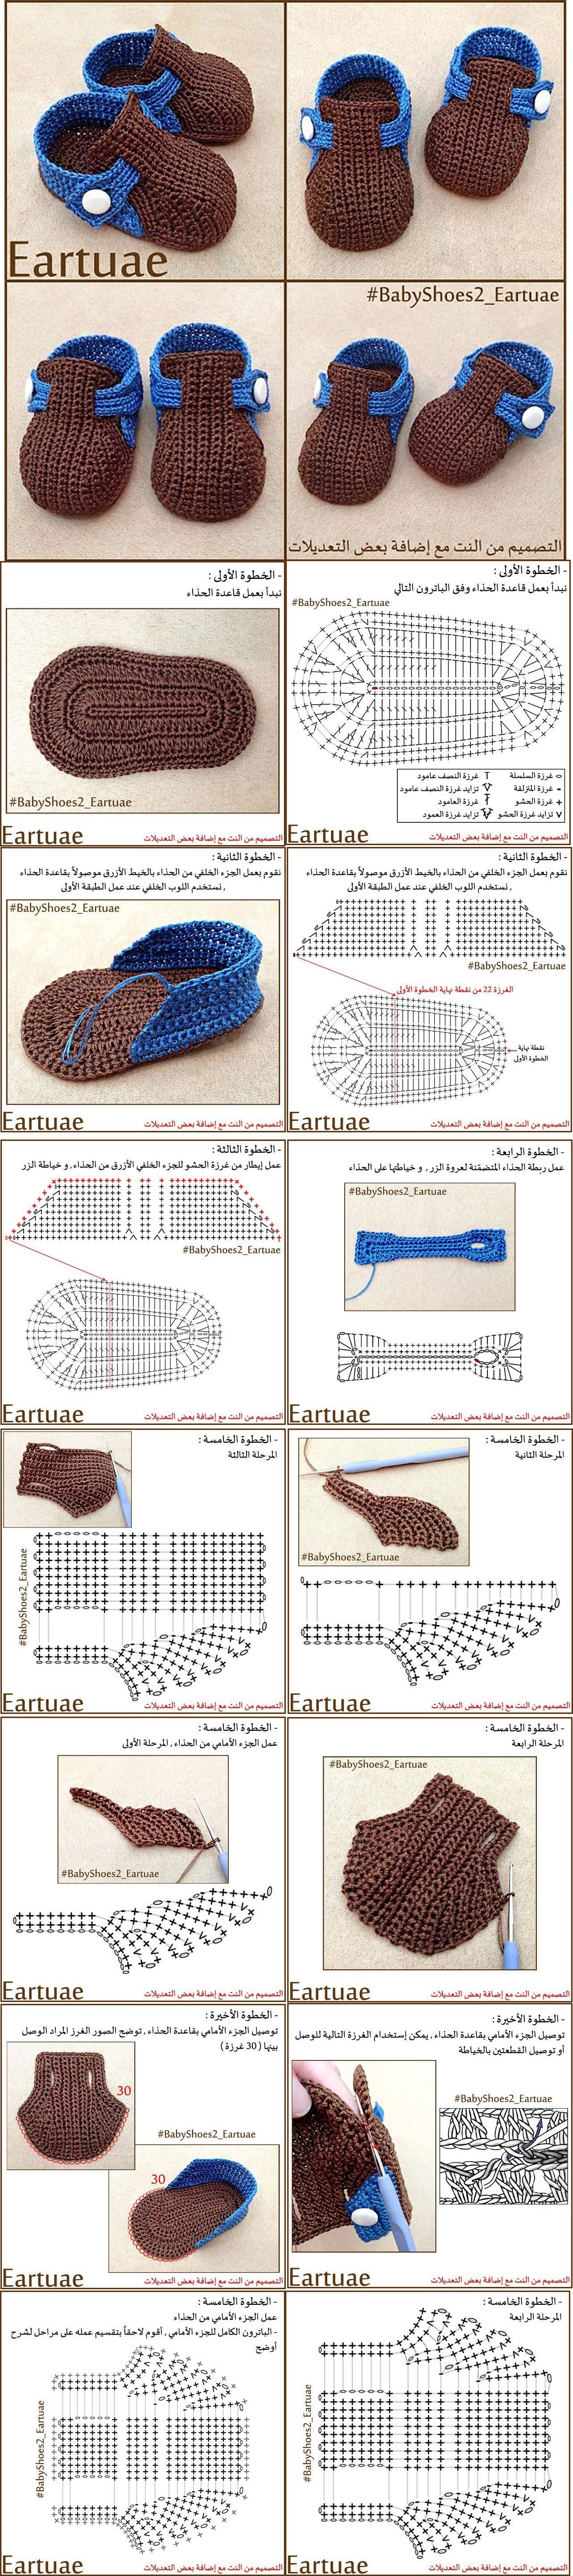 ... Craft, Free Patterns - Knitting, Crochet, D?y, Craft, Free Patterns